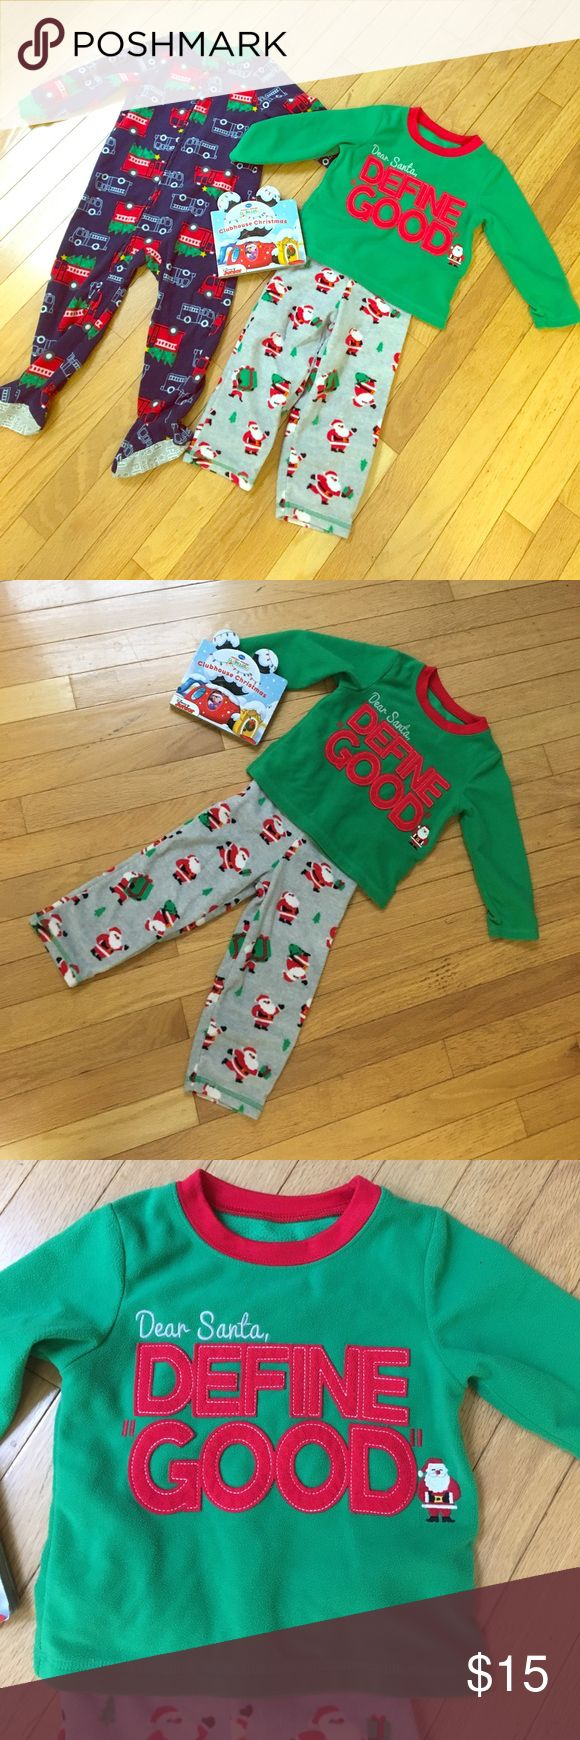 """⛄️ Carter's Christmas PJ Bundle! 🎅🏼 Comfy and warm 2T Christmas Pajamas! These were bought at Carters. One is a footie pajama in Navy with cute little sleds. The other is a two piece, """"Dear Santa, Define good"""" Perfect for your little one on Christmas Eve night! 🎅🏼🤶🏼🌲⛄️❄️ Carter's Pajamas Pajama Sets"""